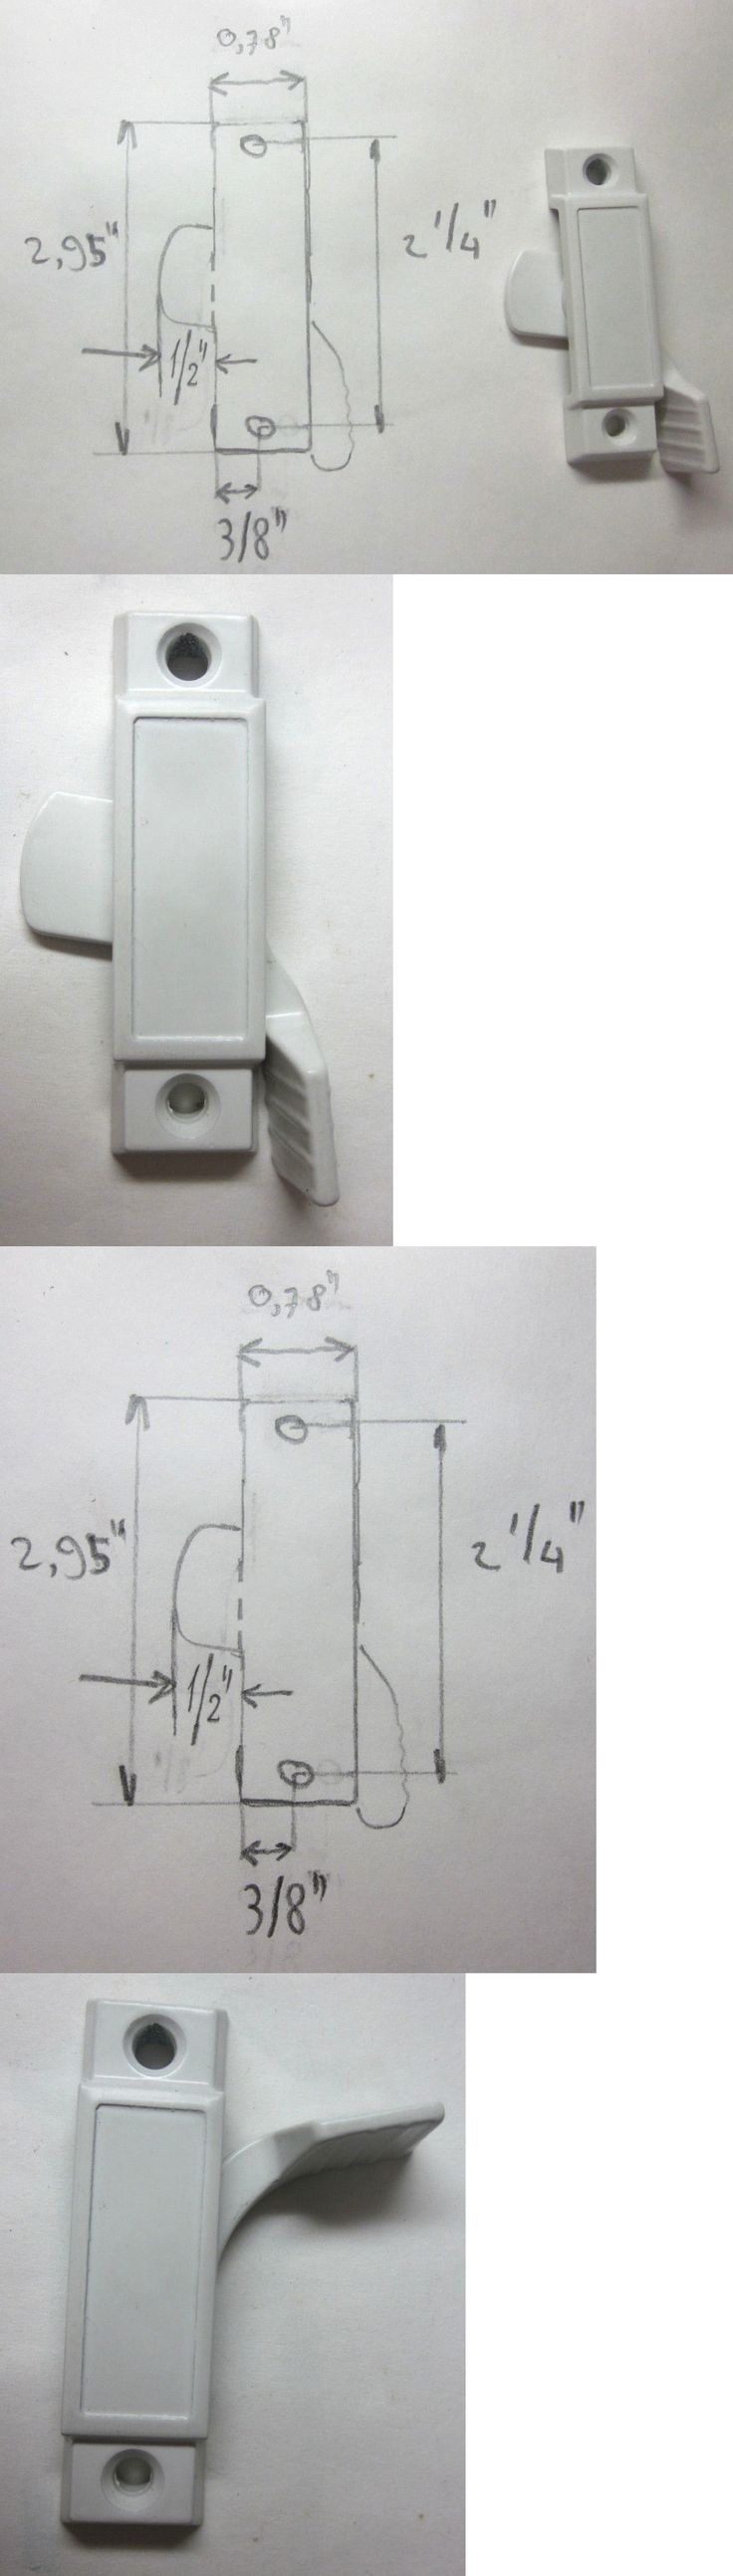 Small surface mounted replacement lock for antique furniture ebay - Window Hardware 45812 6 New White Sliding Window Sash Locks Sweep Latch Lip